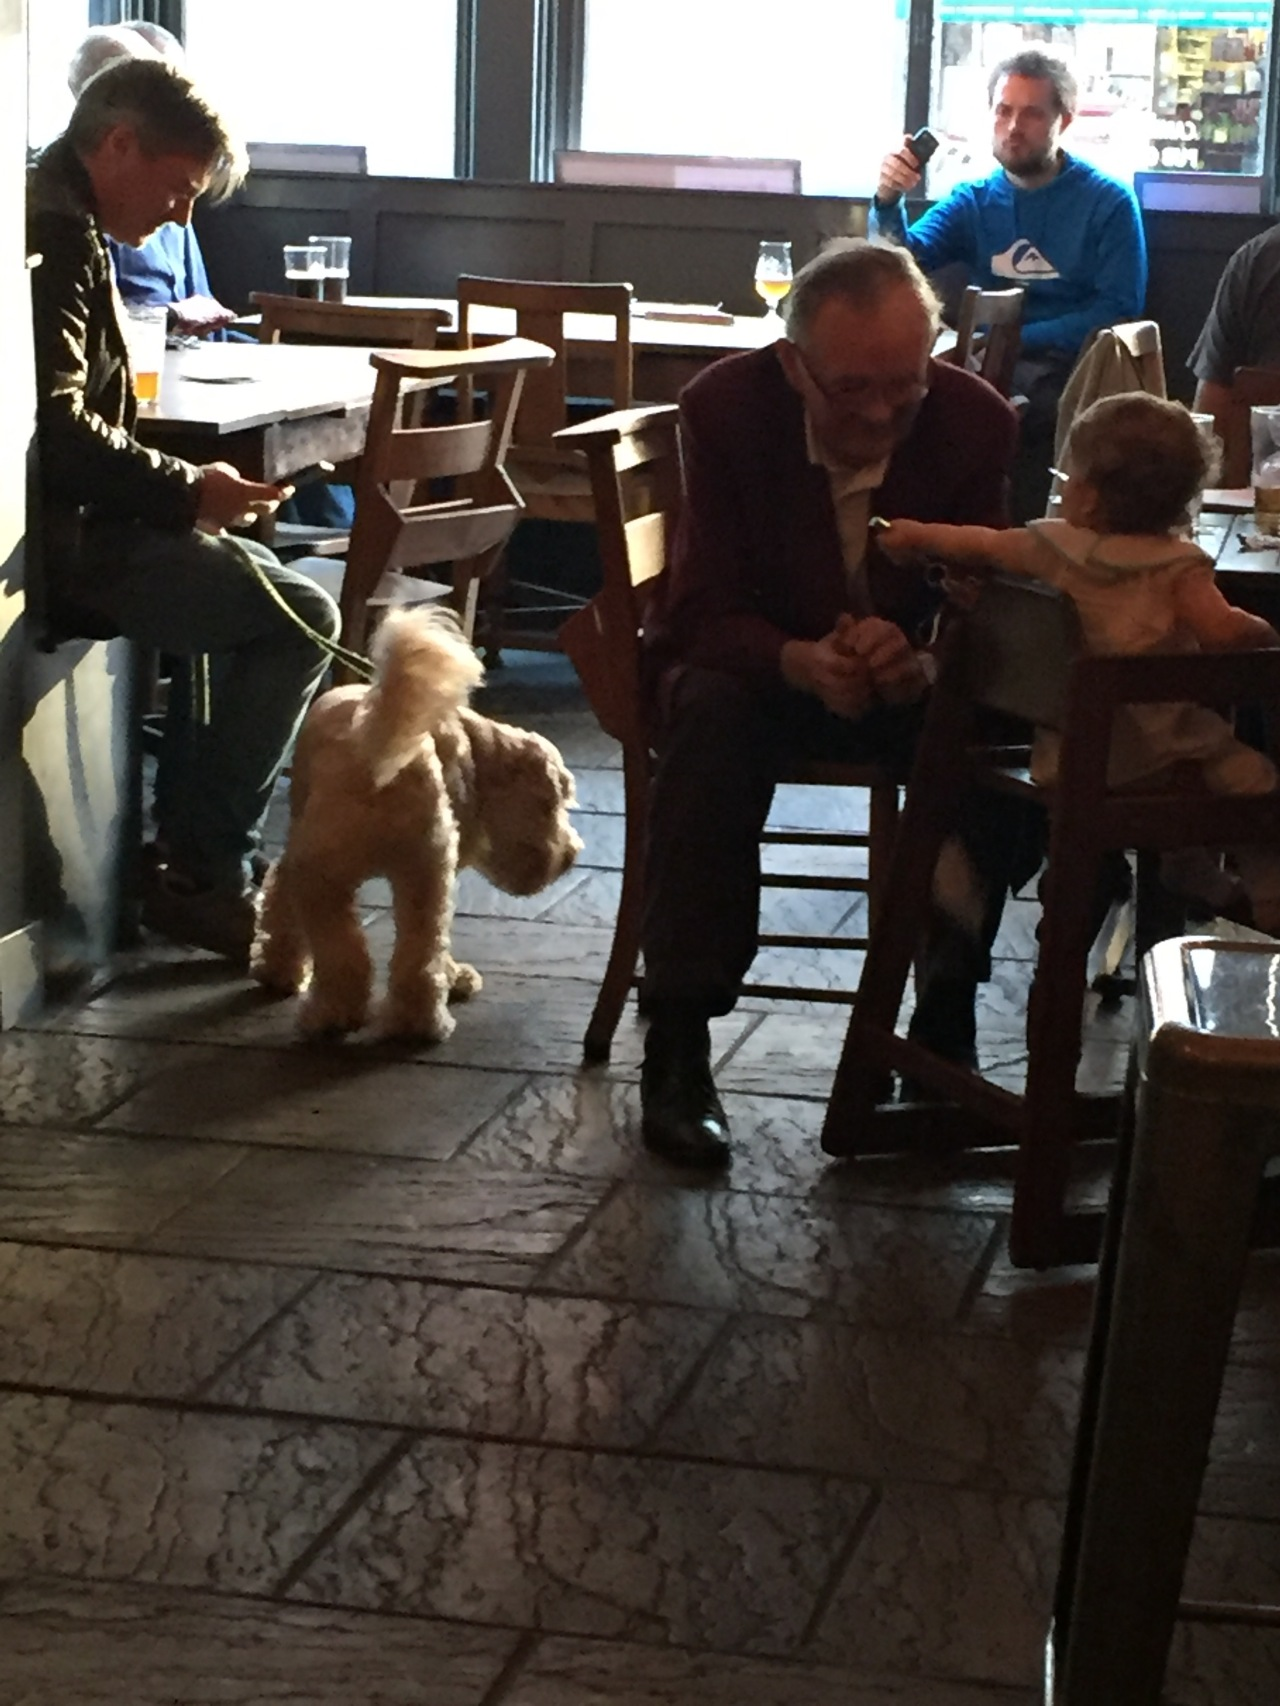 Dog and Baby in the Pub in Highgate